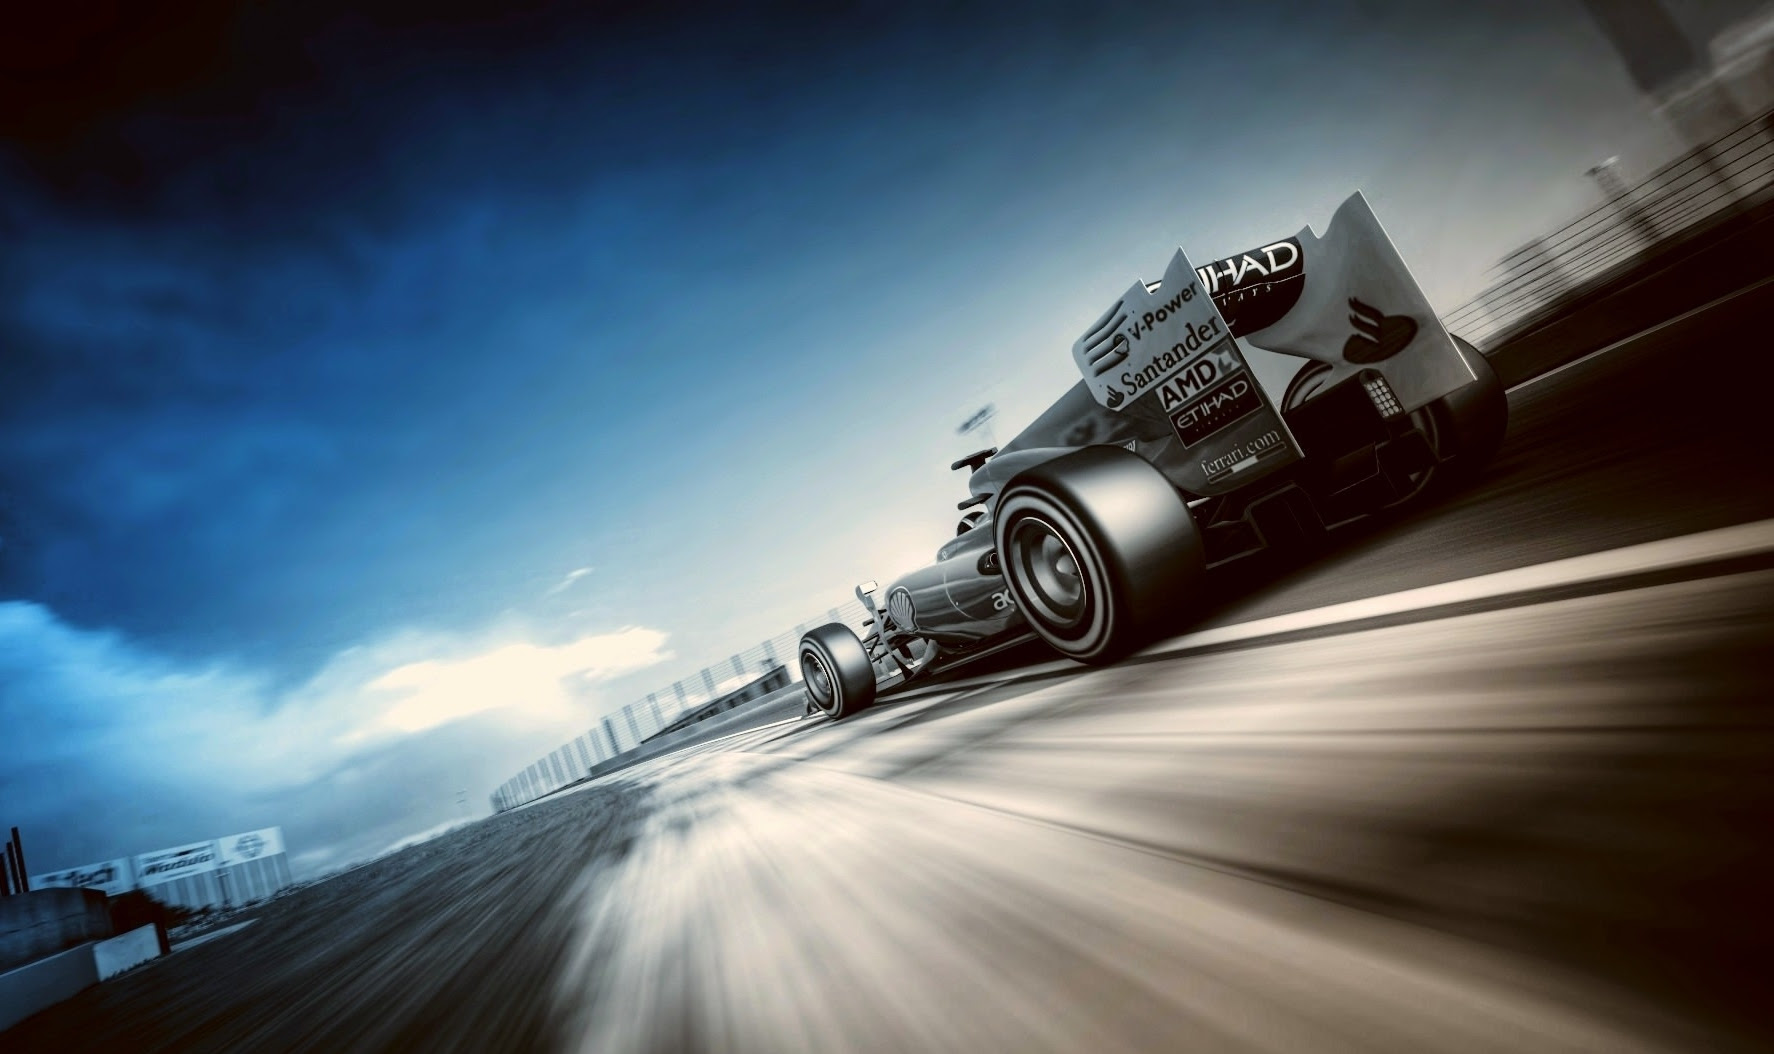 Track Formula 1 Hd Wallpaper Wallpapers Comp